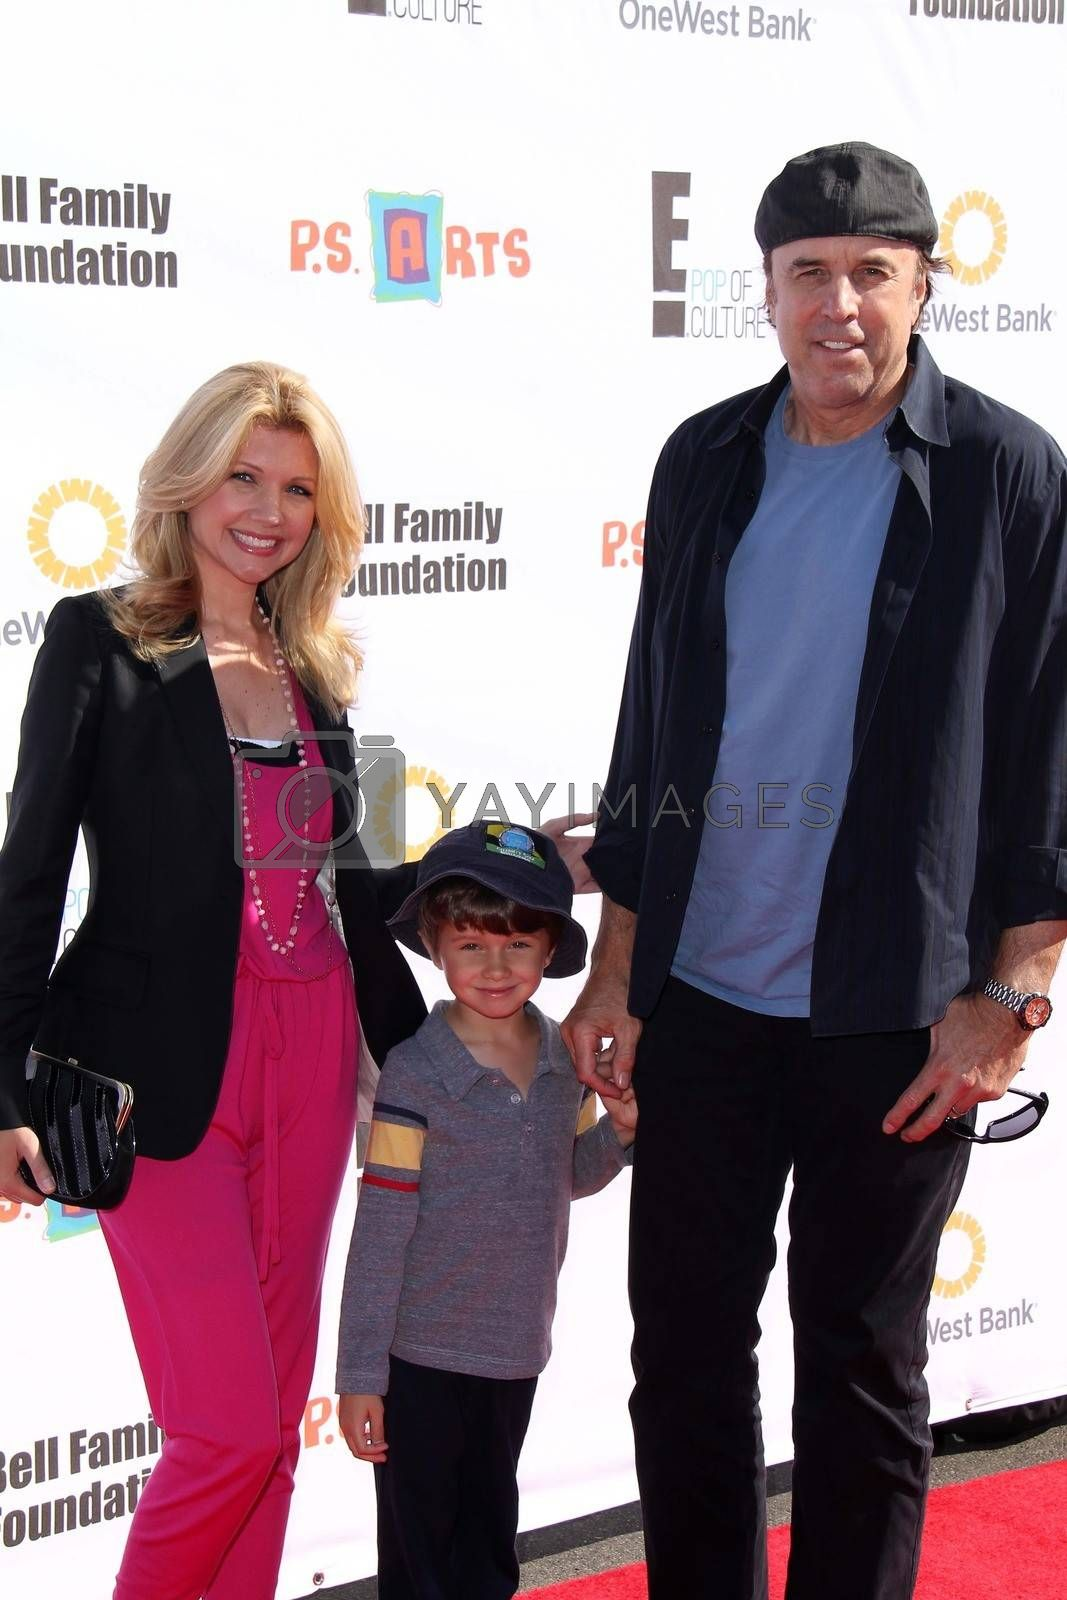 Kevin Nealon Wife Susan Yeagley And Son Gable At P S Arts 2012 Express Yourself Barker Hangar Santa Monica Ca 11 11 12 Imagecollect Royalty Free Stock Image Stock Photos Royalty Free Images Vectors Footage Yayimages View all susan yeagley pictures. https www yayimages com 12271282 kevin nealon wife susan yeagley and son gableat ps arts 2012 express yourself barker hangar santa monica ca 11 11 12imagecollect html